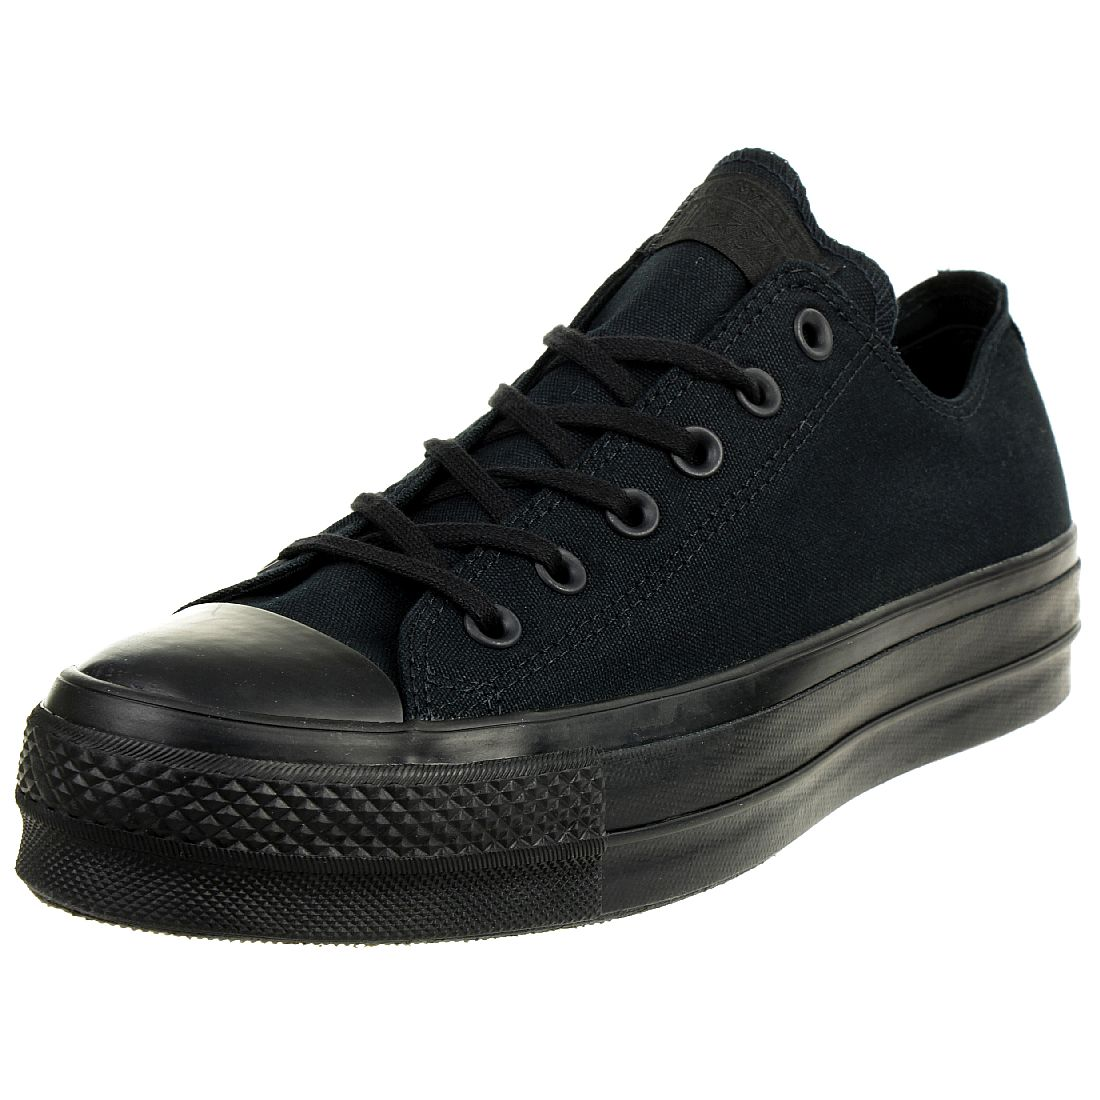 new styles b7d42 7950f Converse C Taylor All Star LIFT CLEAN OX Chuck Sneaker ...